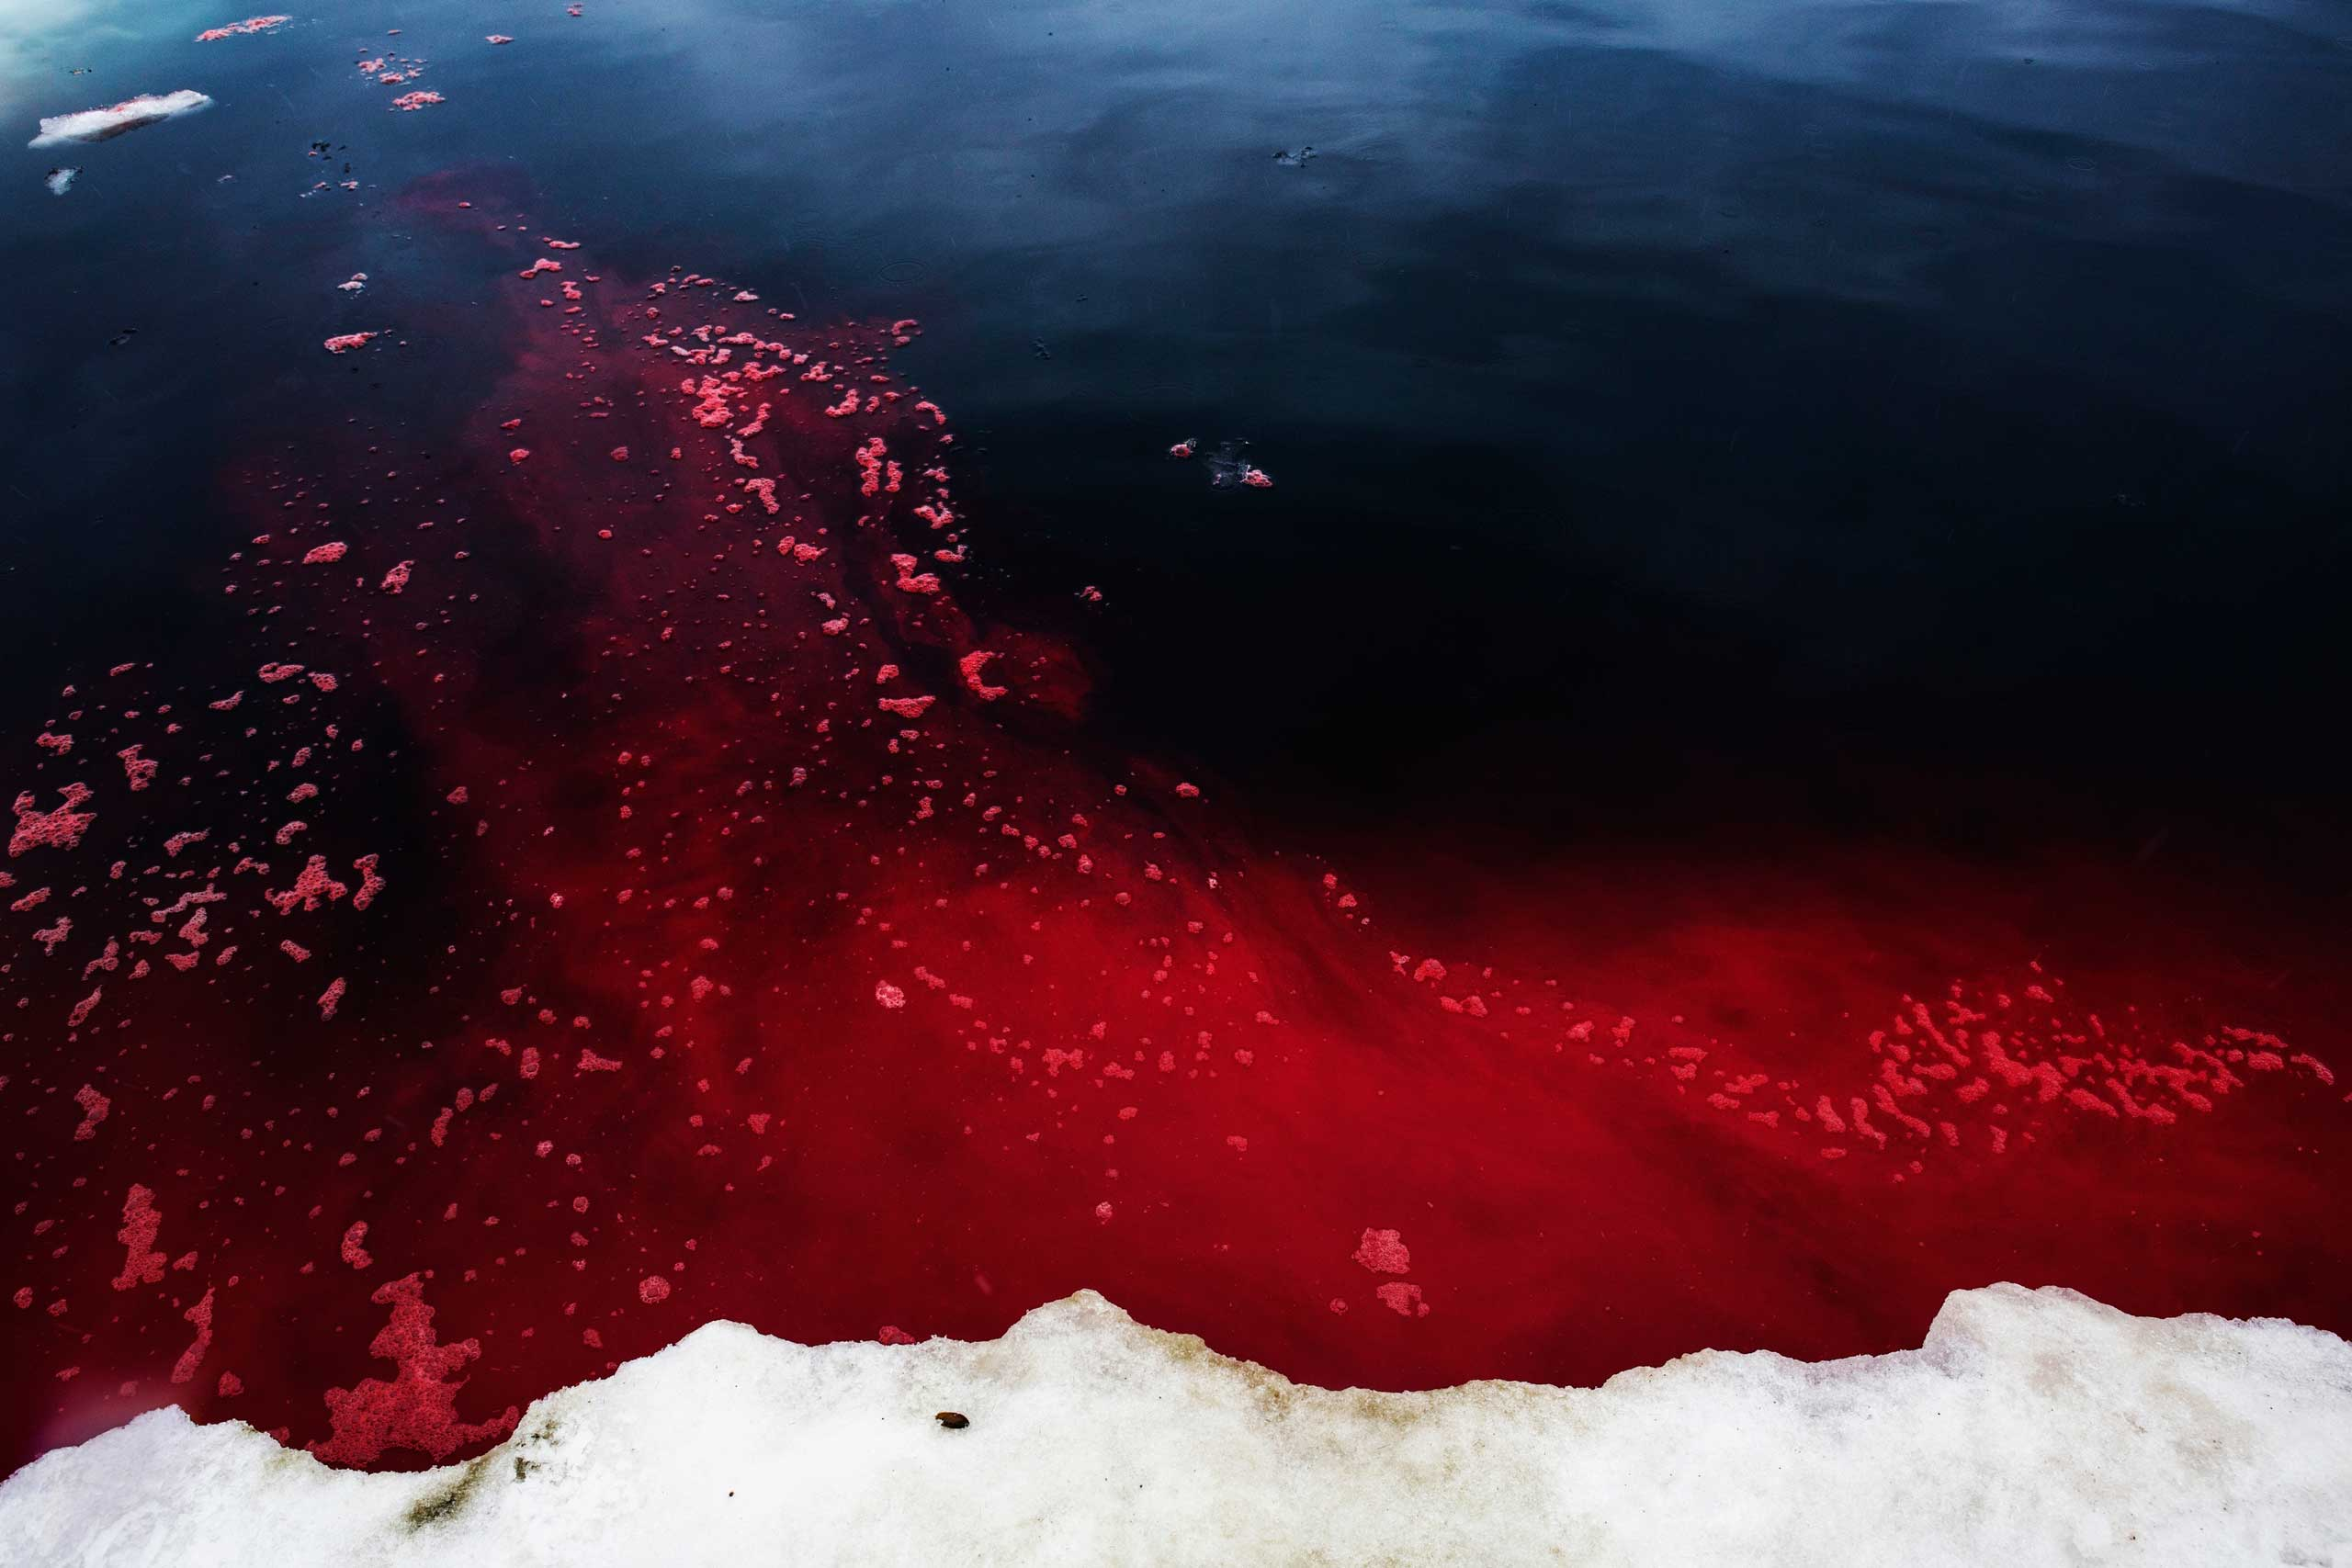 Walrus blood in the Arctic Ocean near Barrow, Alaska. Hunters looked for ugruk (bearded seal) after the sea ice  went out  but came upon hundreds of walrus instead. Walrus this close to town during this time of year is rare, and due to warming weather.